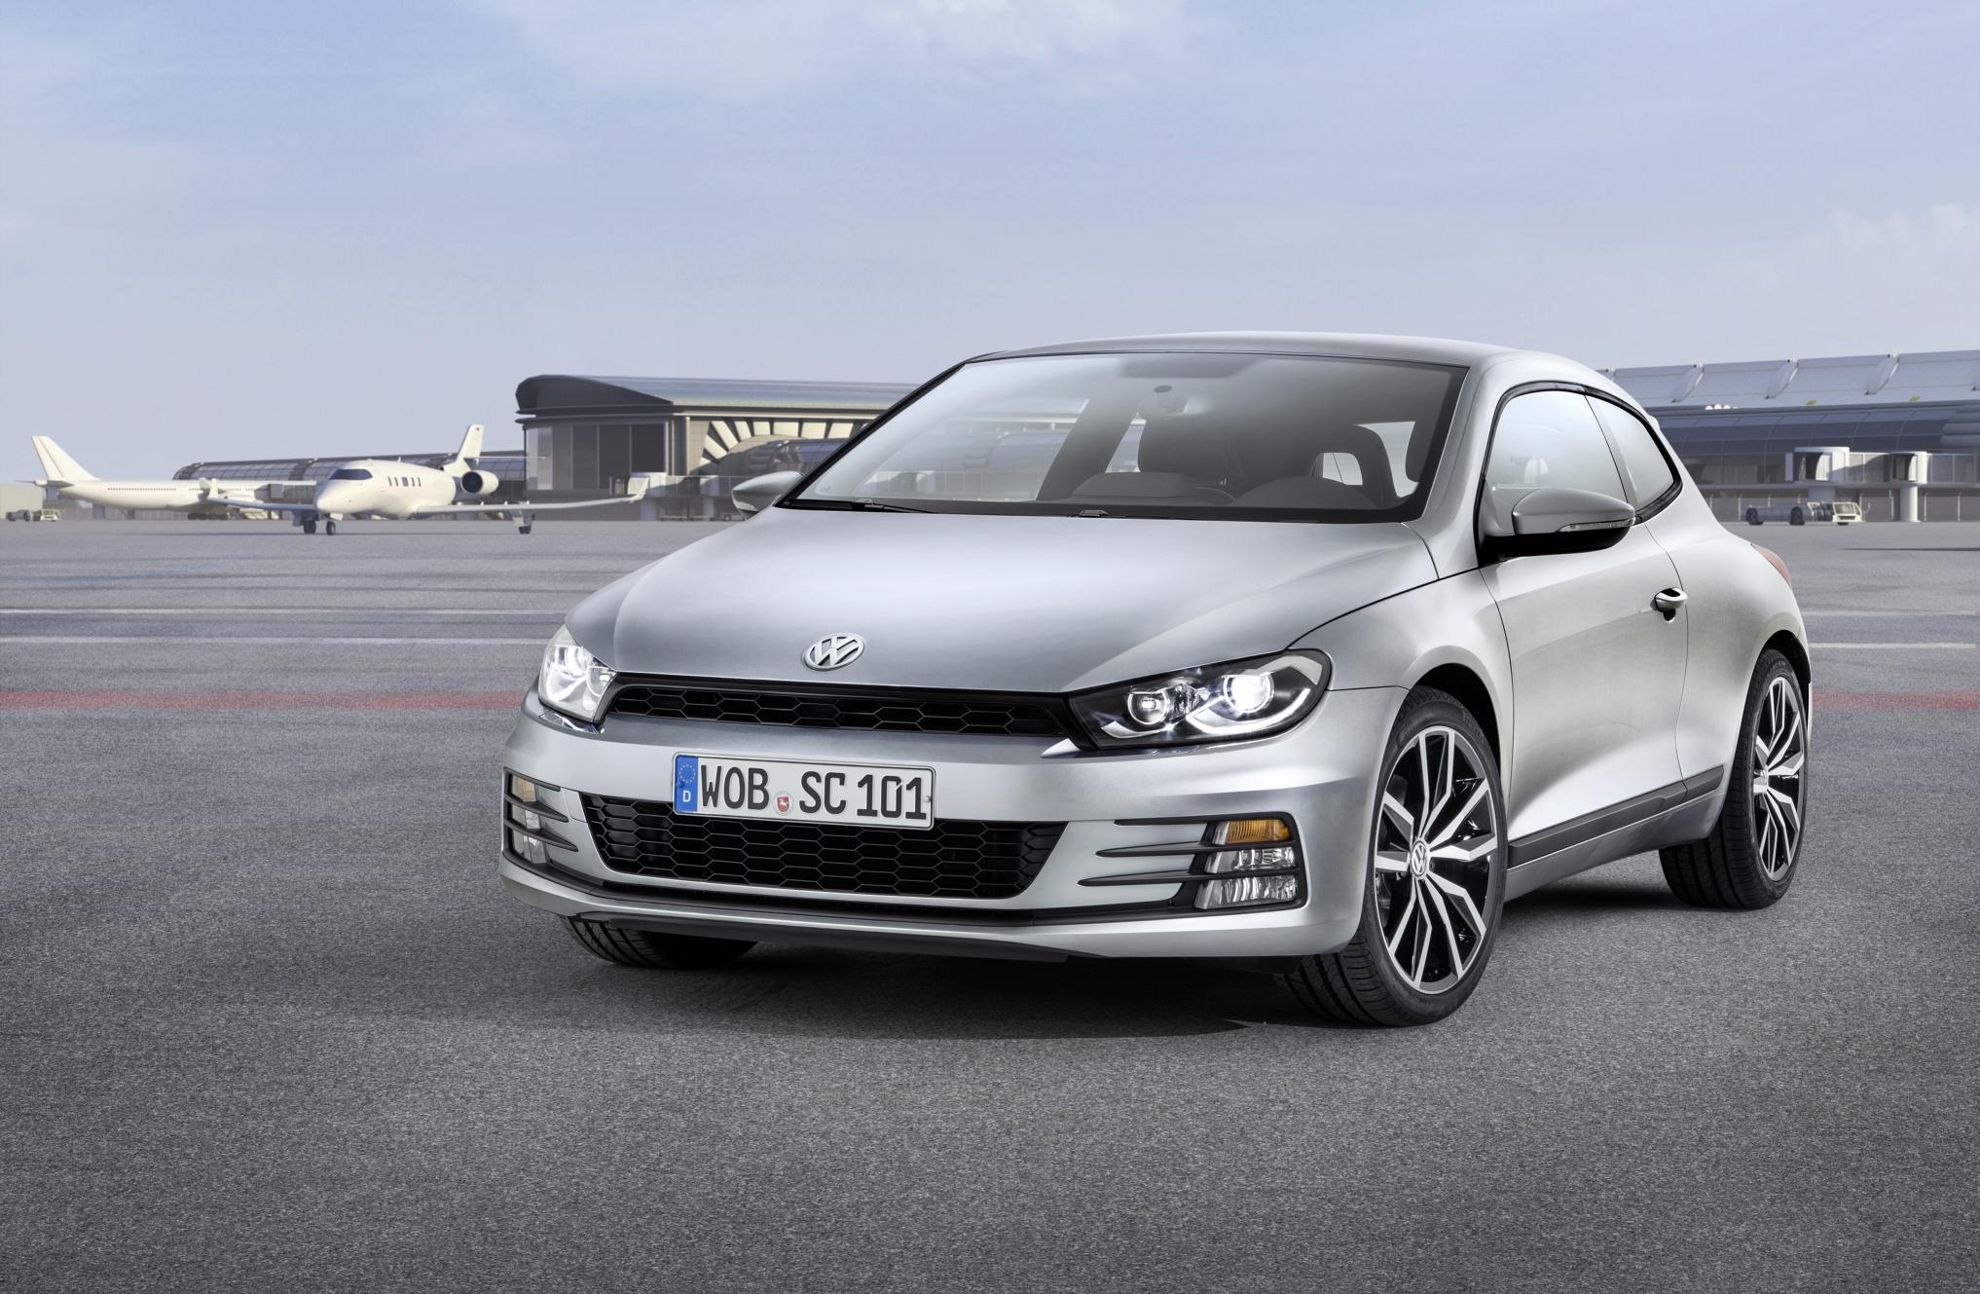 volkswagen scirocco geneva motor show 2014. Black Bedroom Furniture Sets. Home Design Ideas